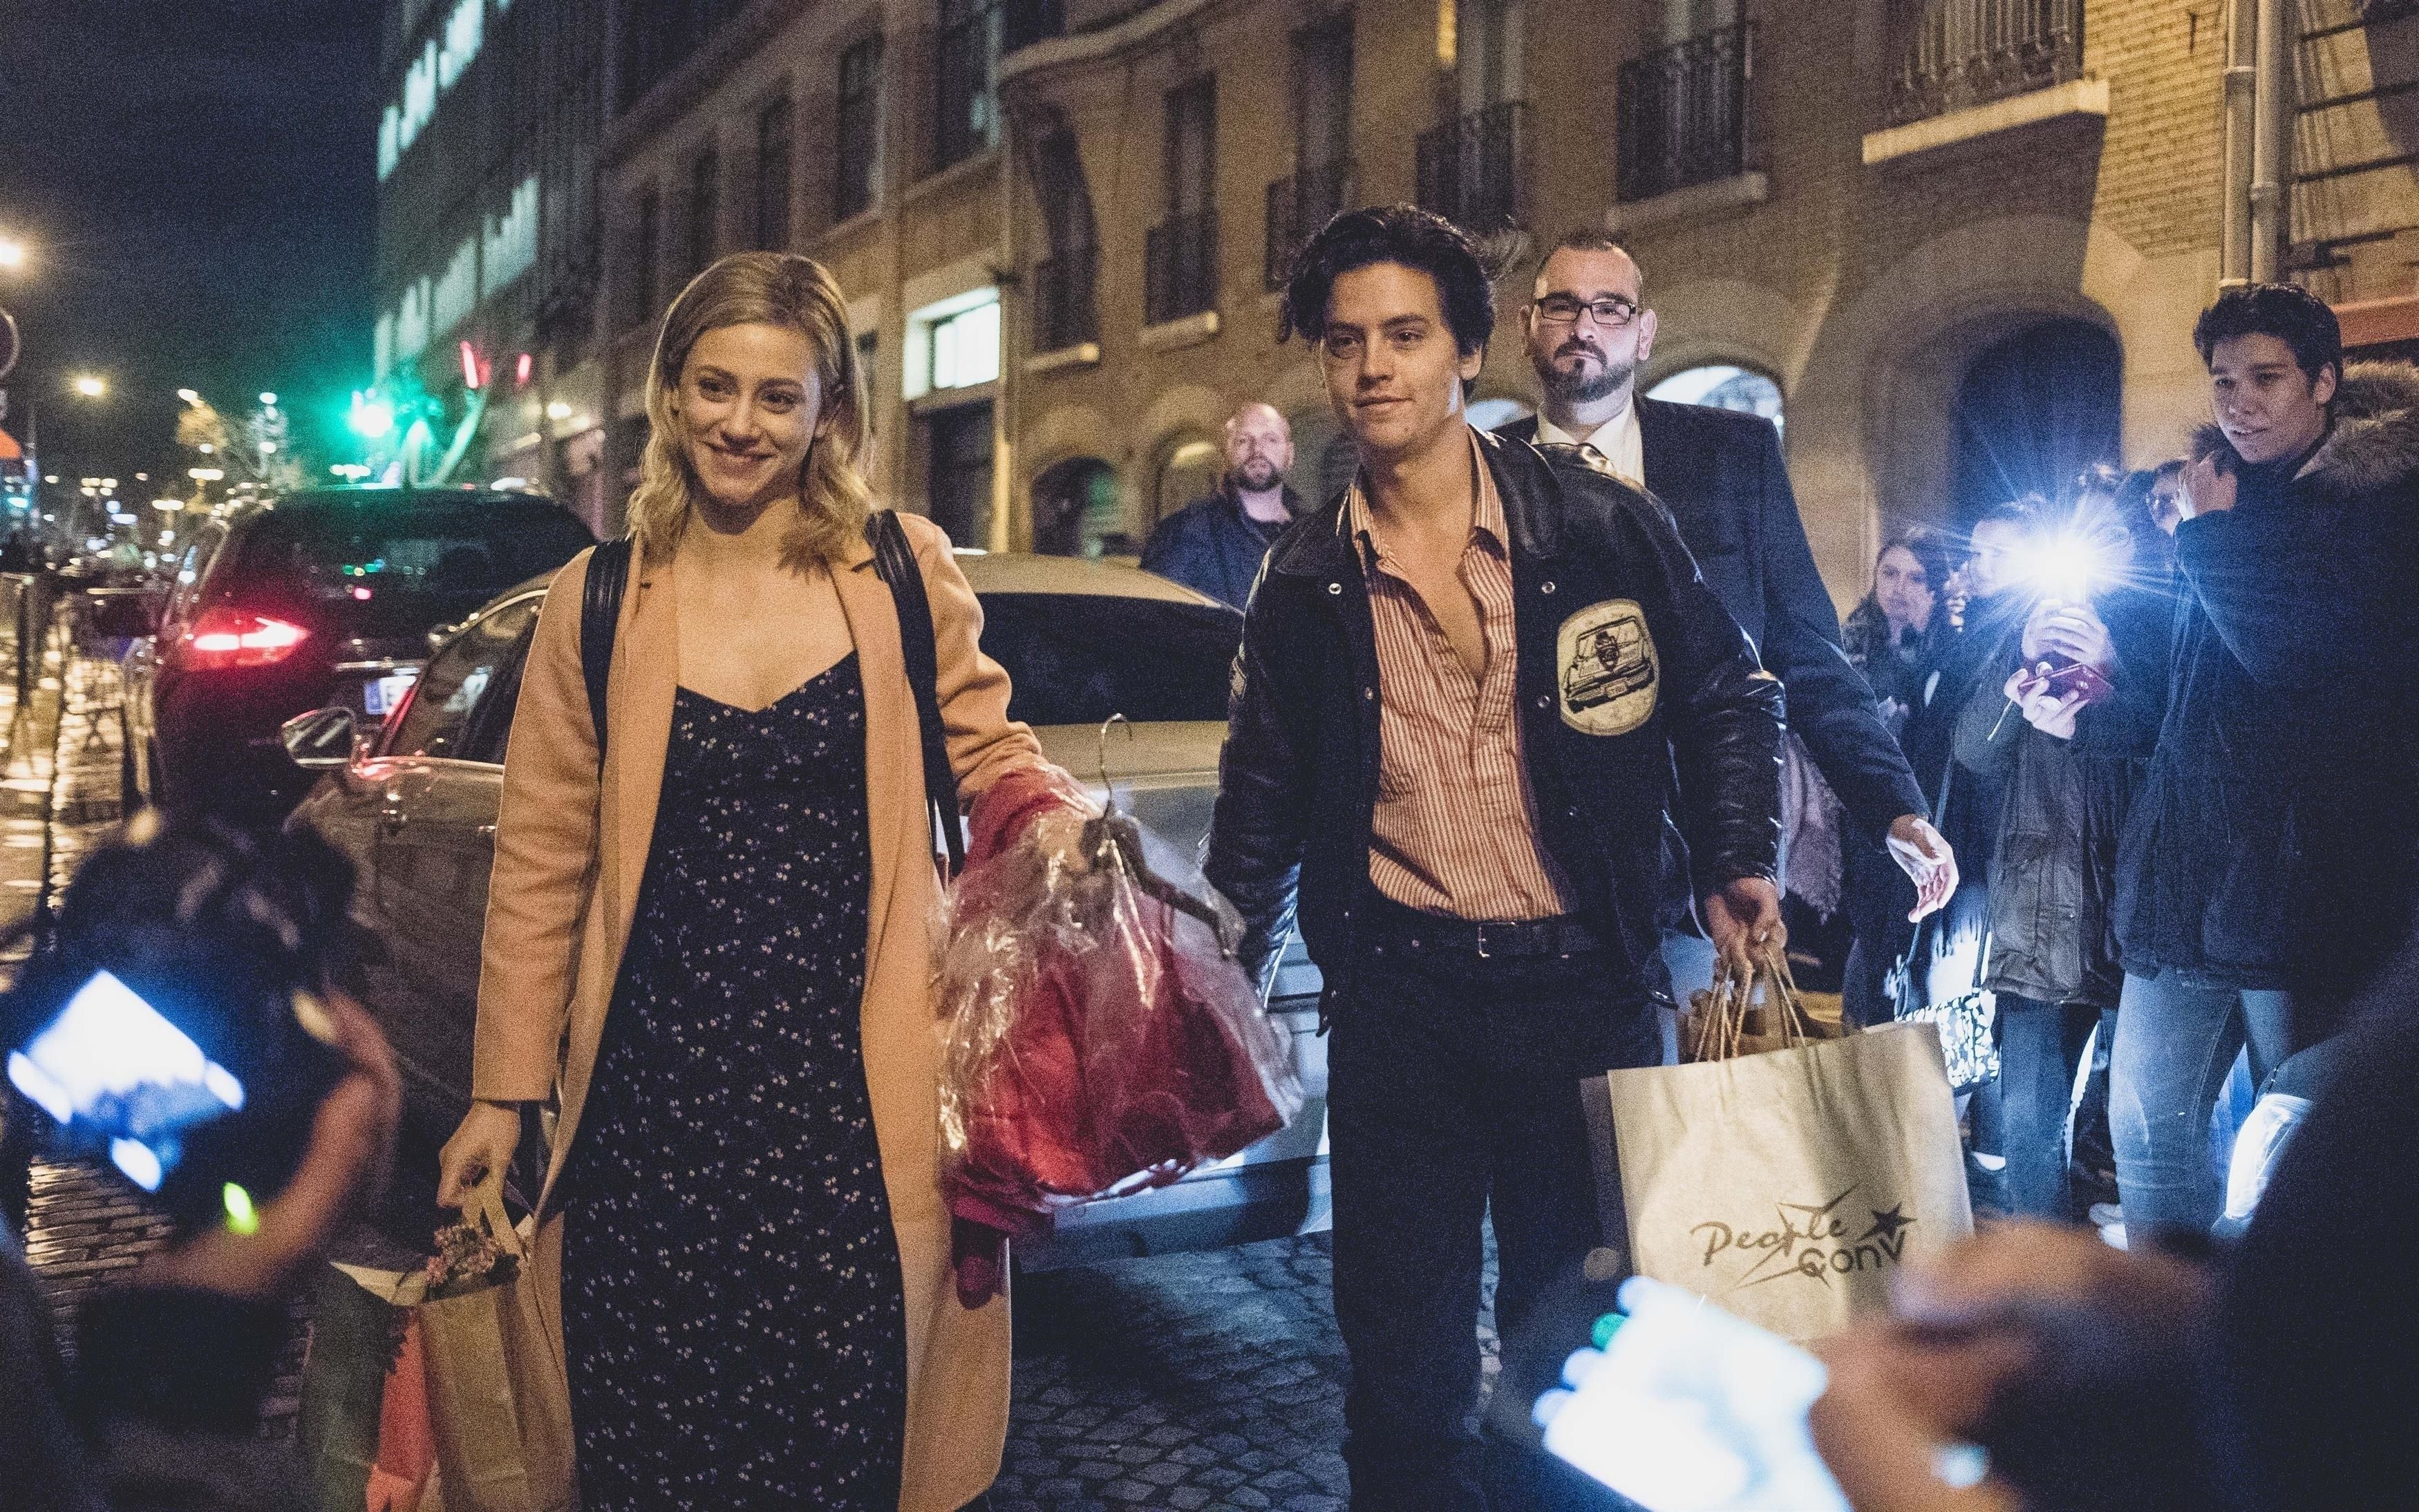 Cole sprouse and lili reinhart confirm theyre dating with kiss cole sprouse and lili reinhart confirm theyre dating with kiss photos sprousehart pda in paris m4hsunfo